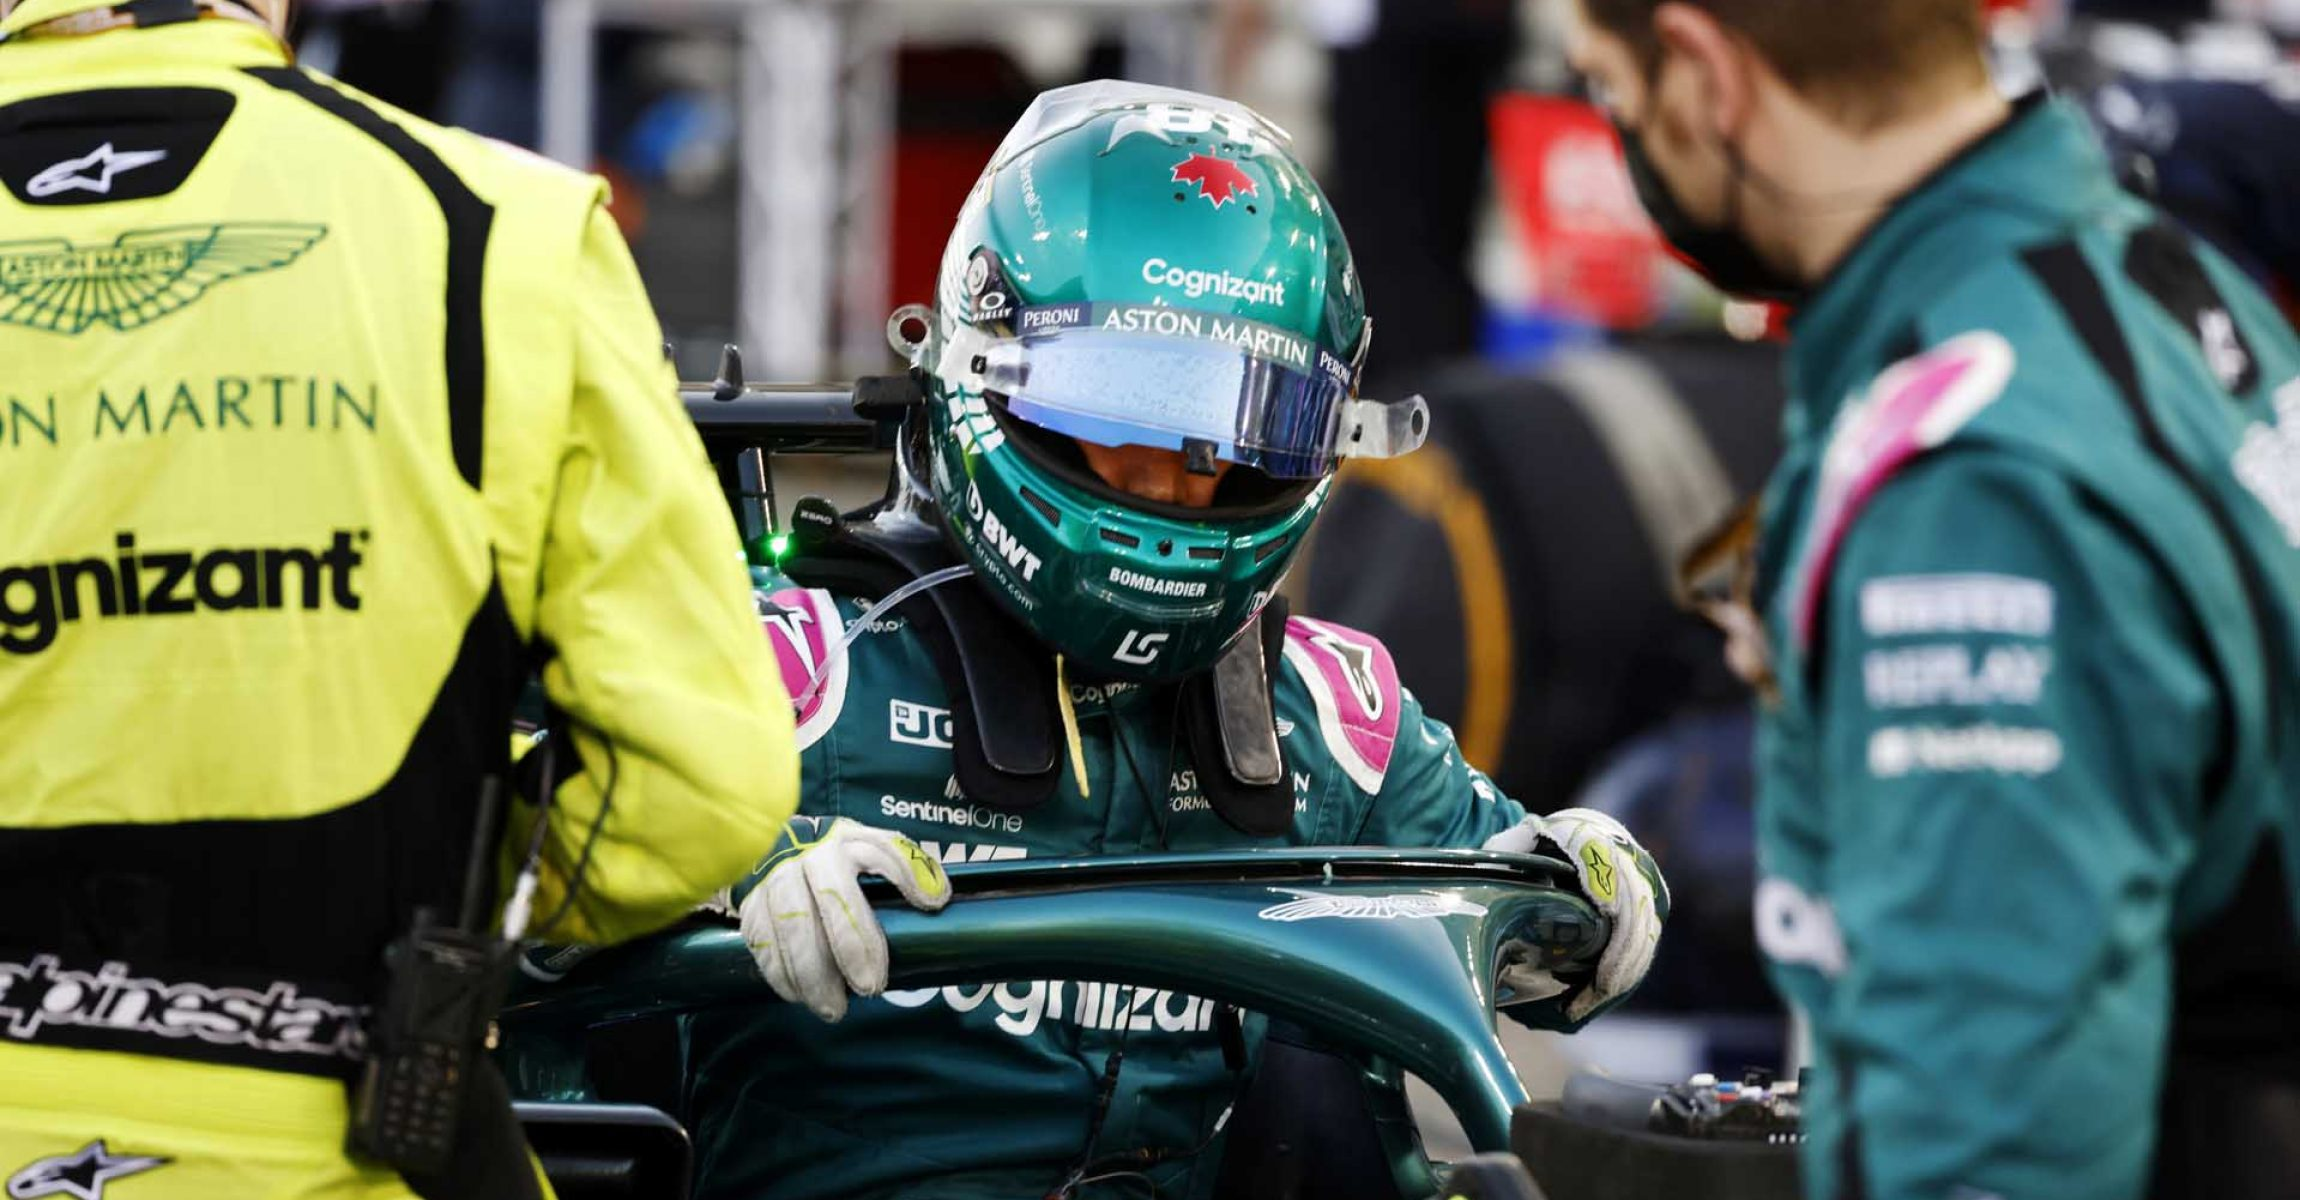 Lance Stroll, Aston Martin, climbs out of his car on the grid